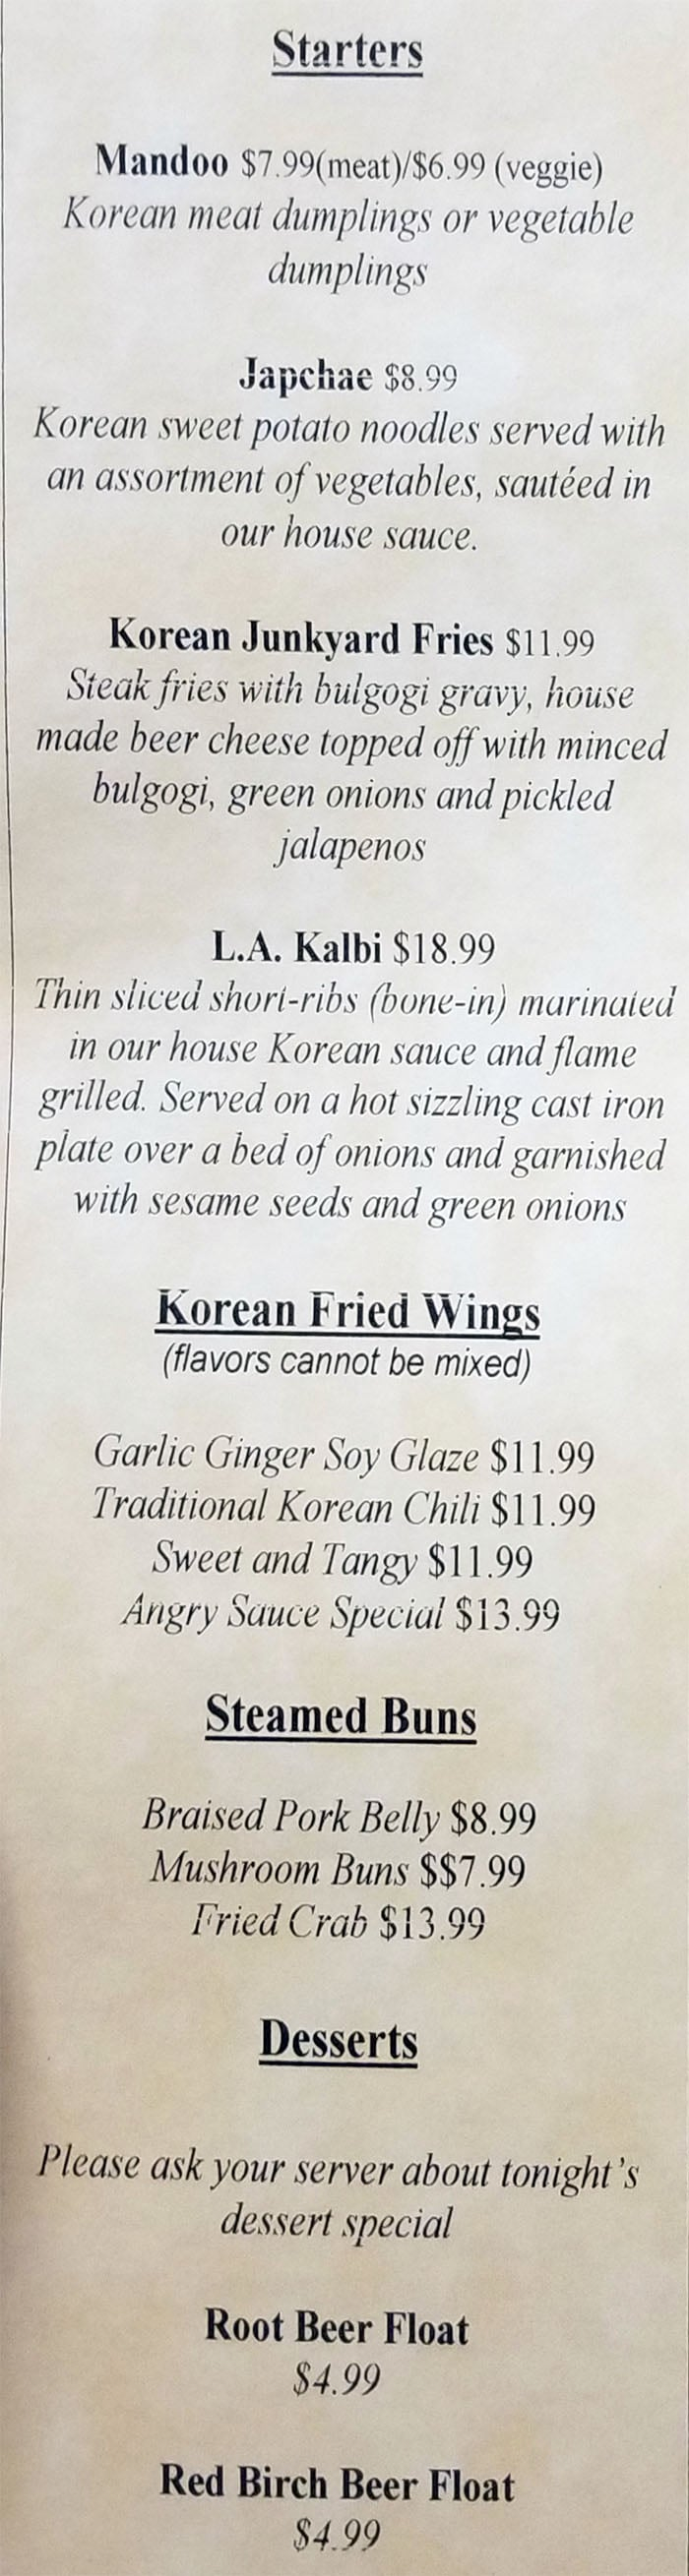 The Angry Korean dinner menu - starters, desserts